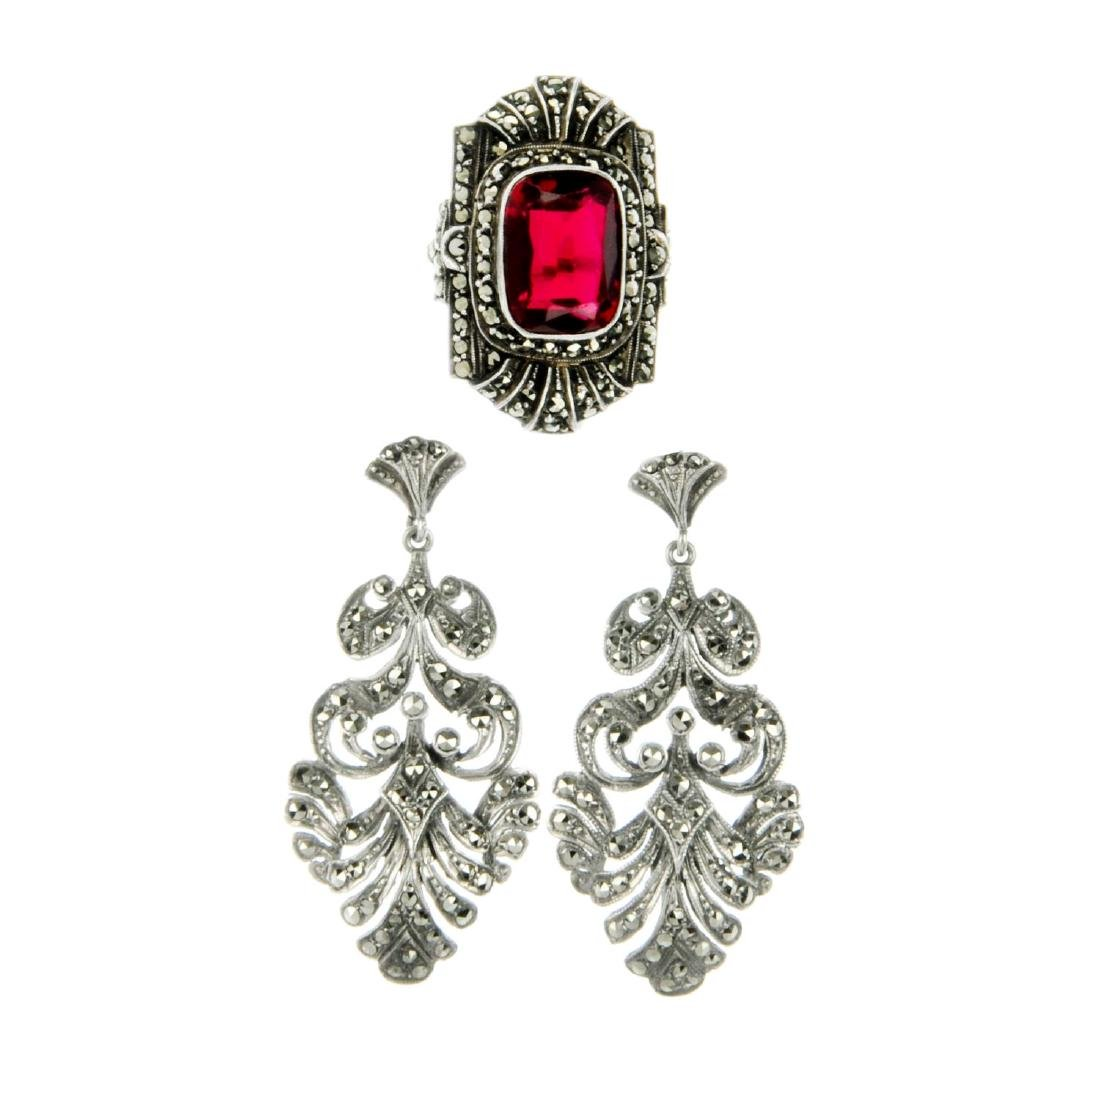 A selection of marcasite jewellery. To include a red